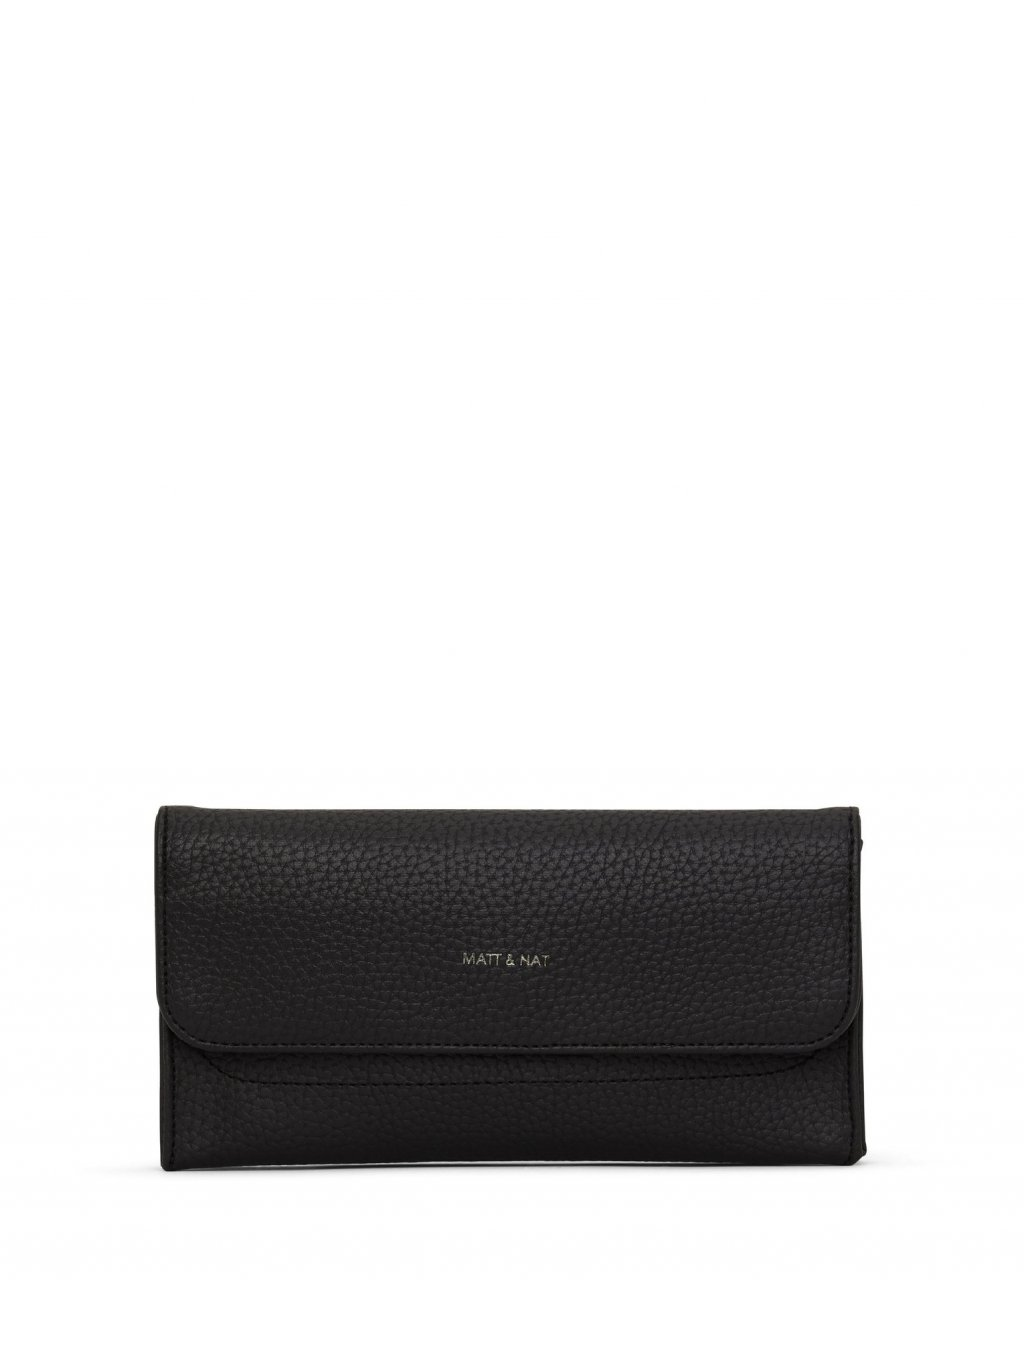 FW20 Purity Niki Black 1 1542x1800